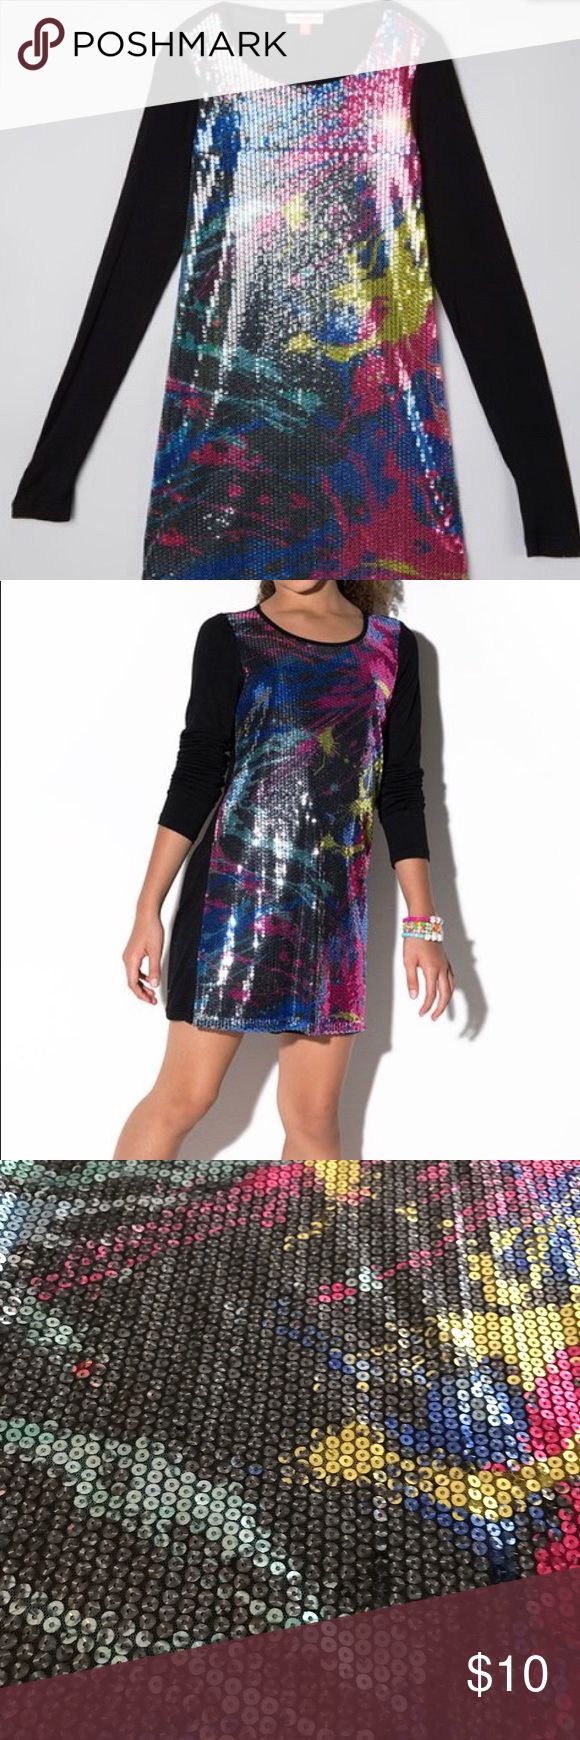 Little Miss Matched Sequin Dress Girls 6 Good used condition, love the colorful shimmer. Has an easy-on, comfy fit.  Chest 26-27, Waist 21.5-22.5, and Height 46-49 little Miss Matched Dresses